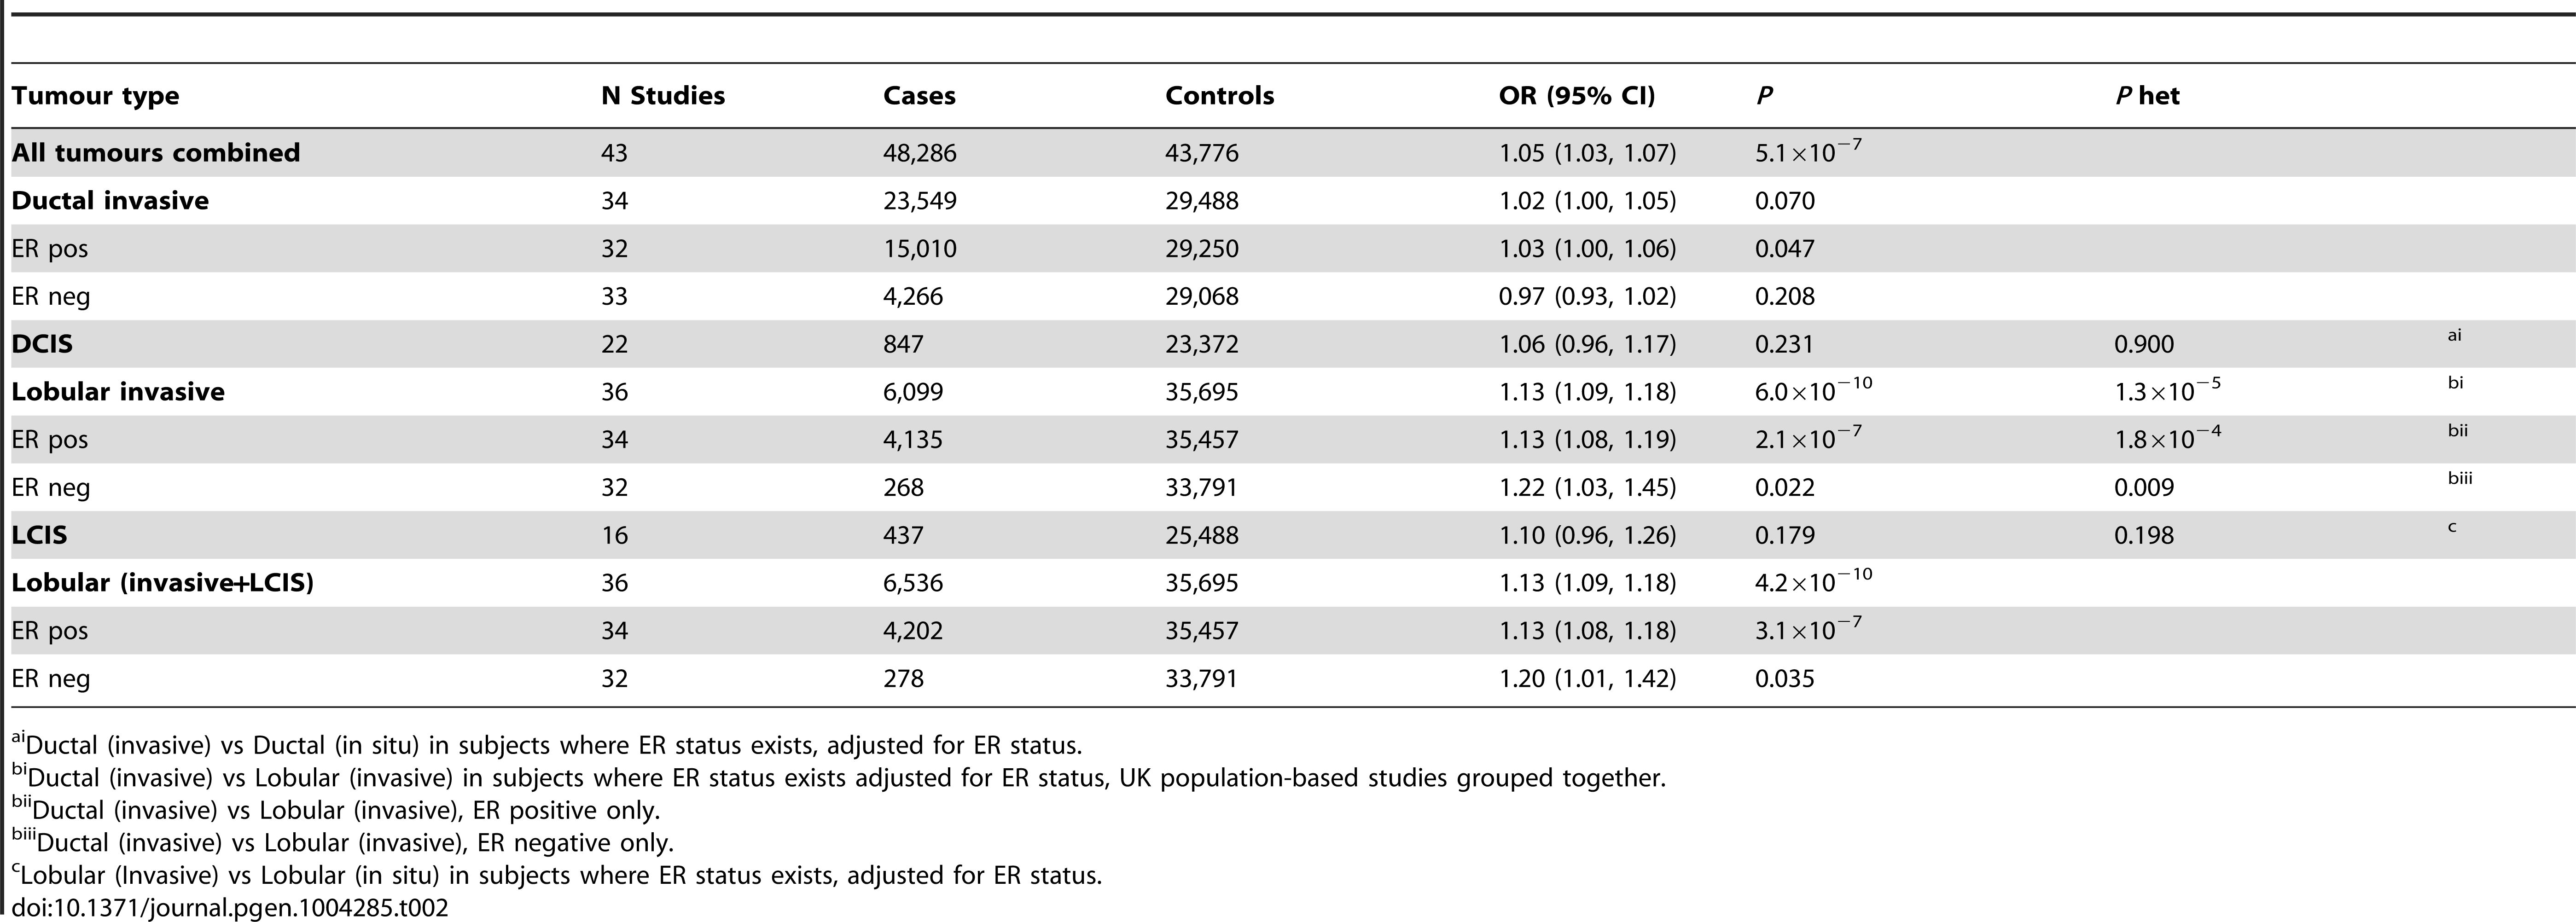 Association with risk of breast cancer for rs11977670 stratified by breast cancer tumour subtypes (Pooled analysis, BCAC, GLACIER, UK PHASE II).